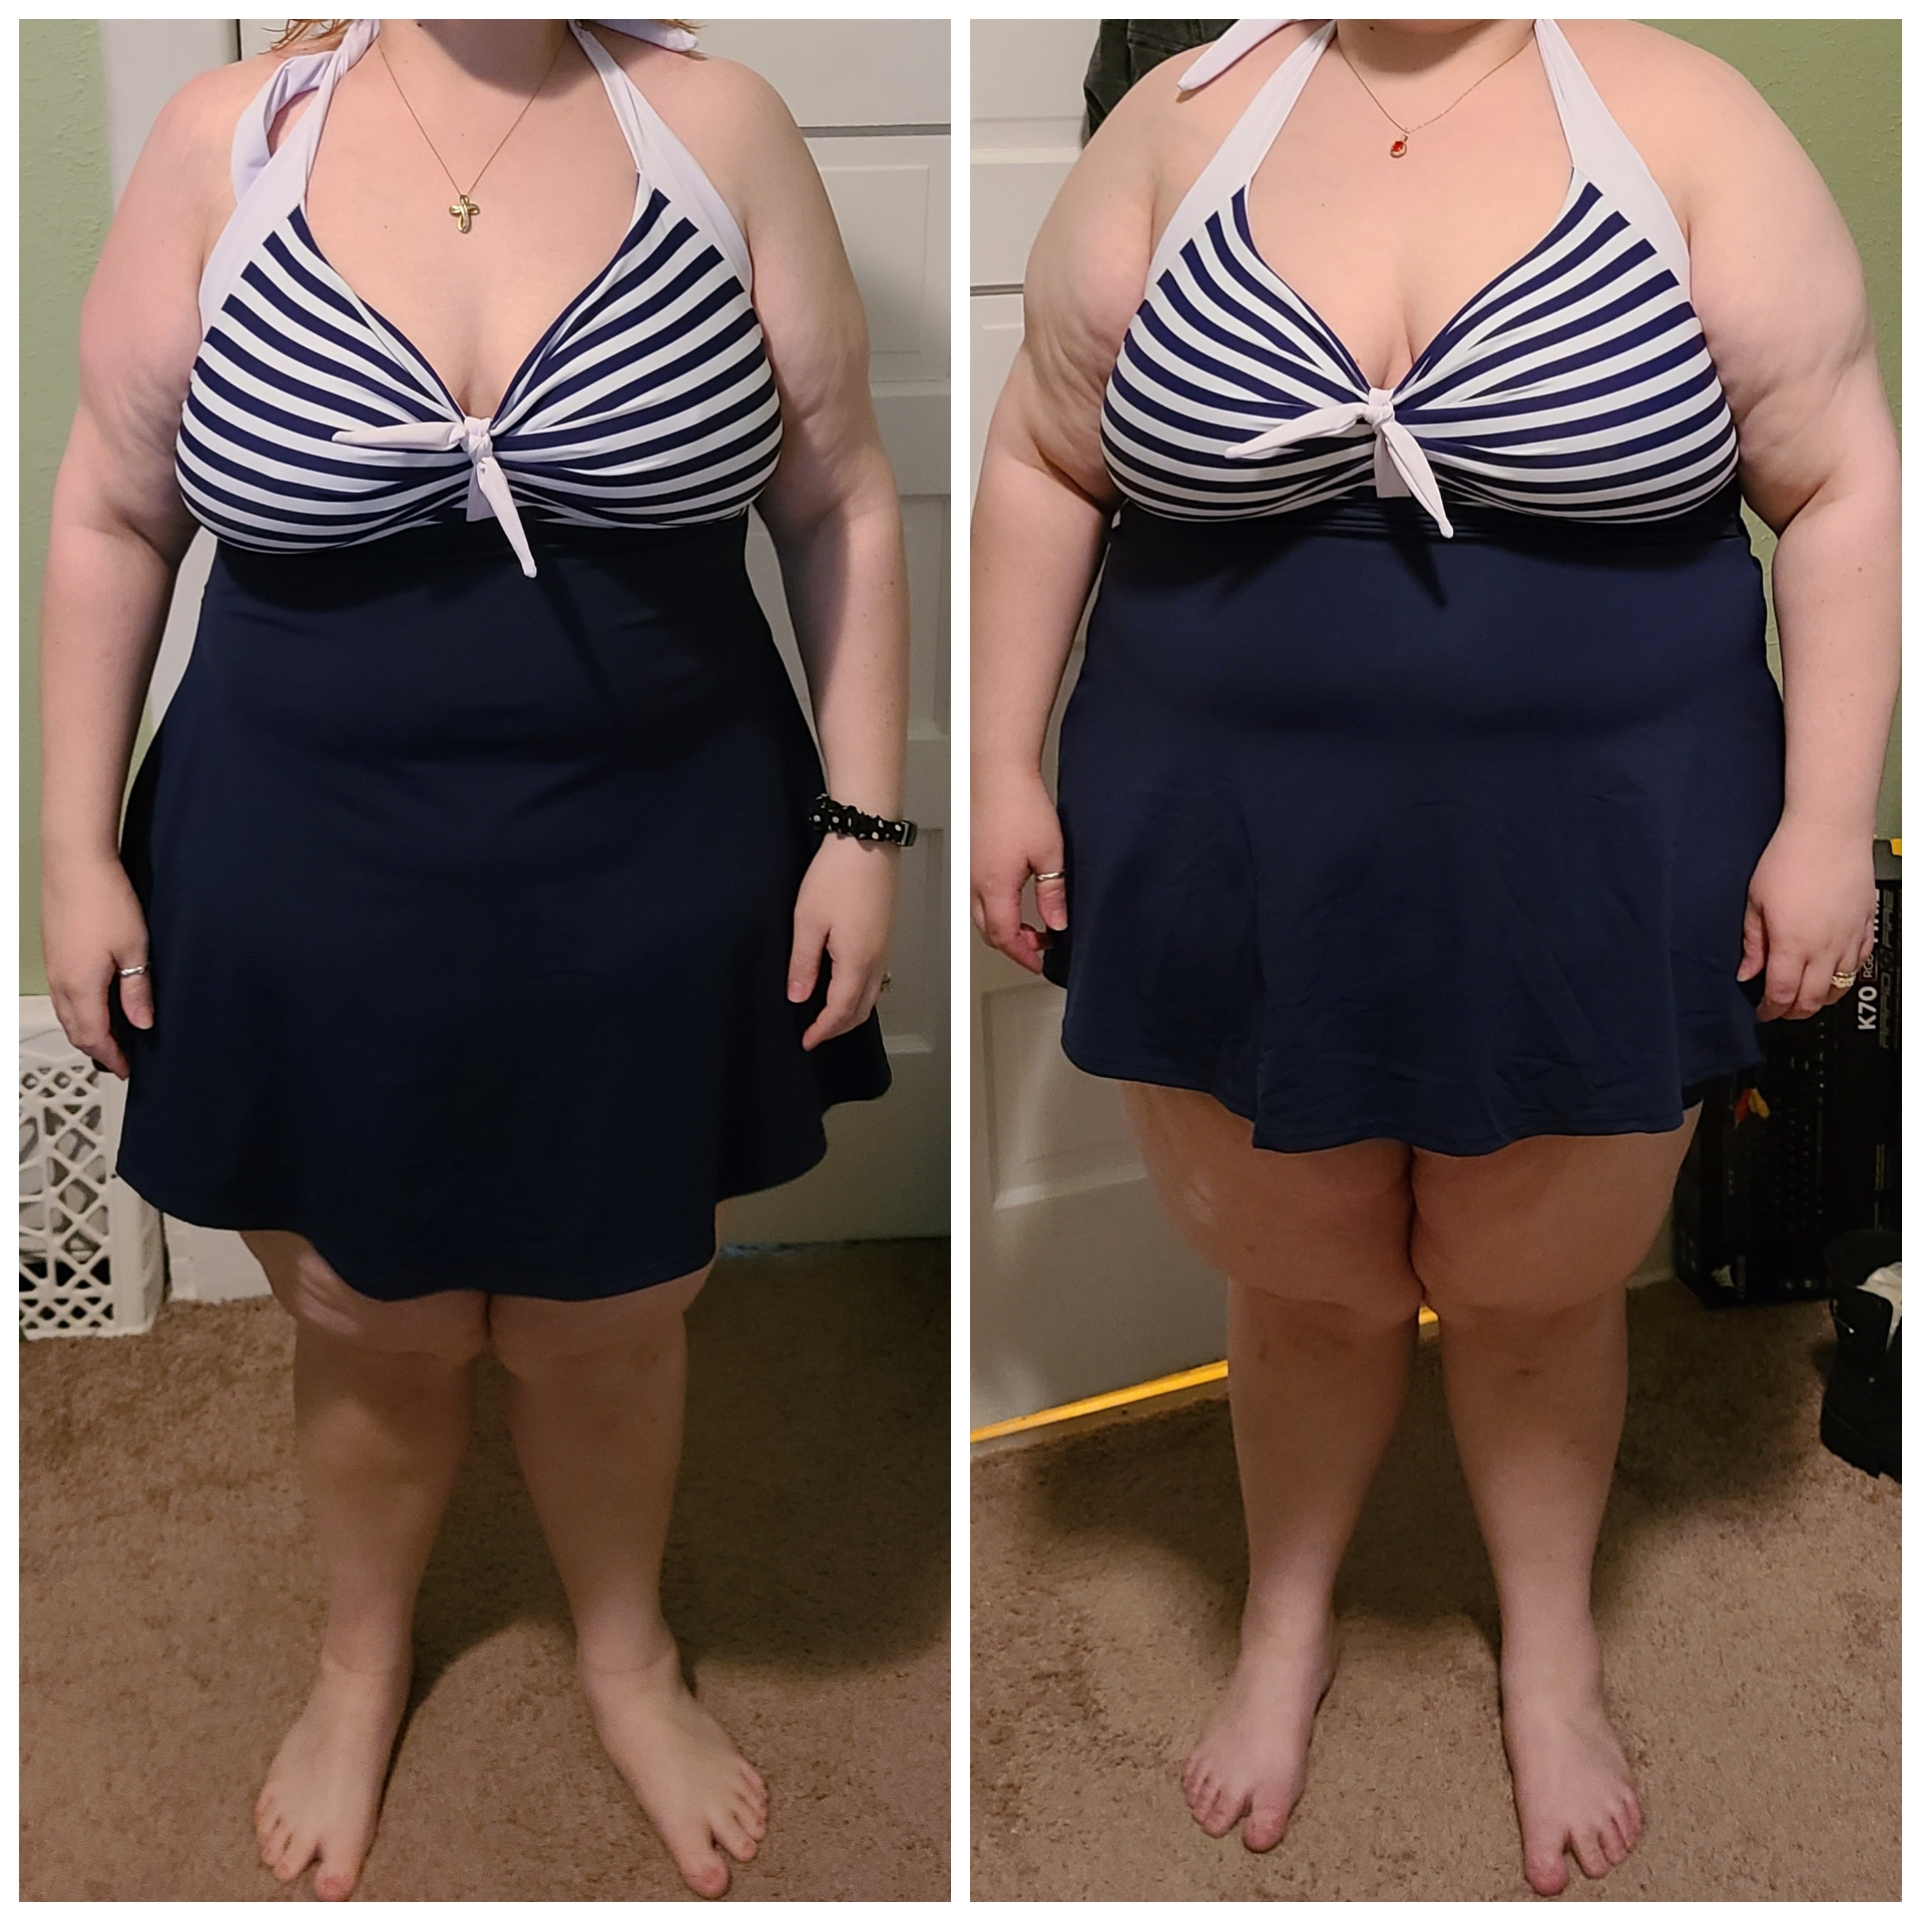 Before and After 88 lbs Fat Loss 5'1 Female 287 lbs to 199 lbs